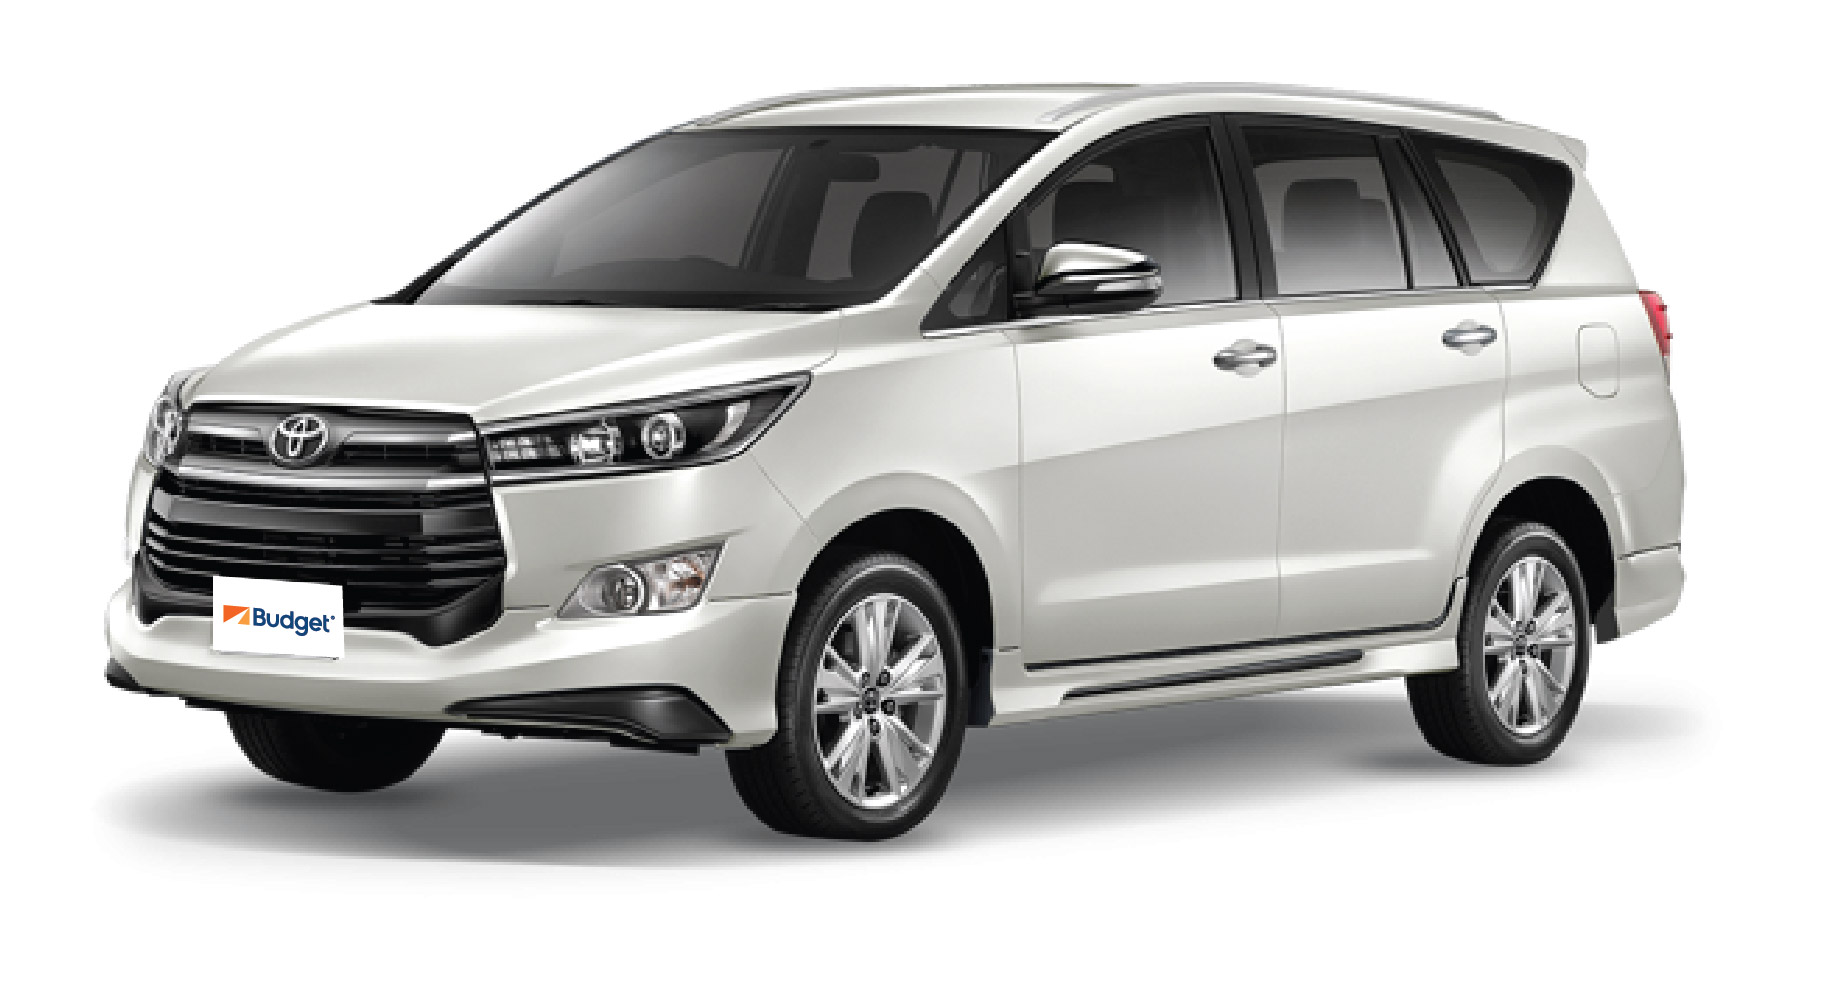 Toyota Innova or similar